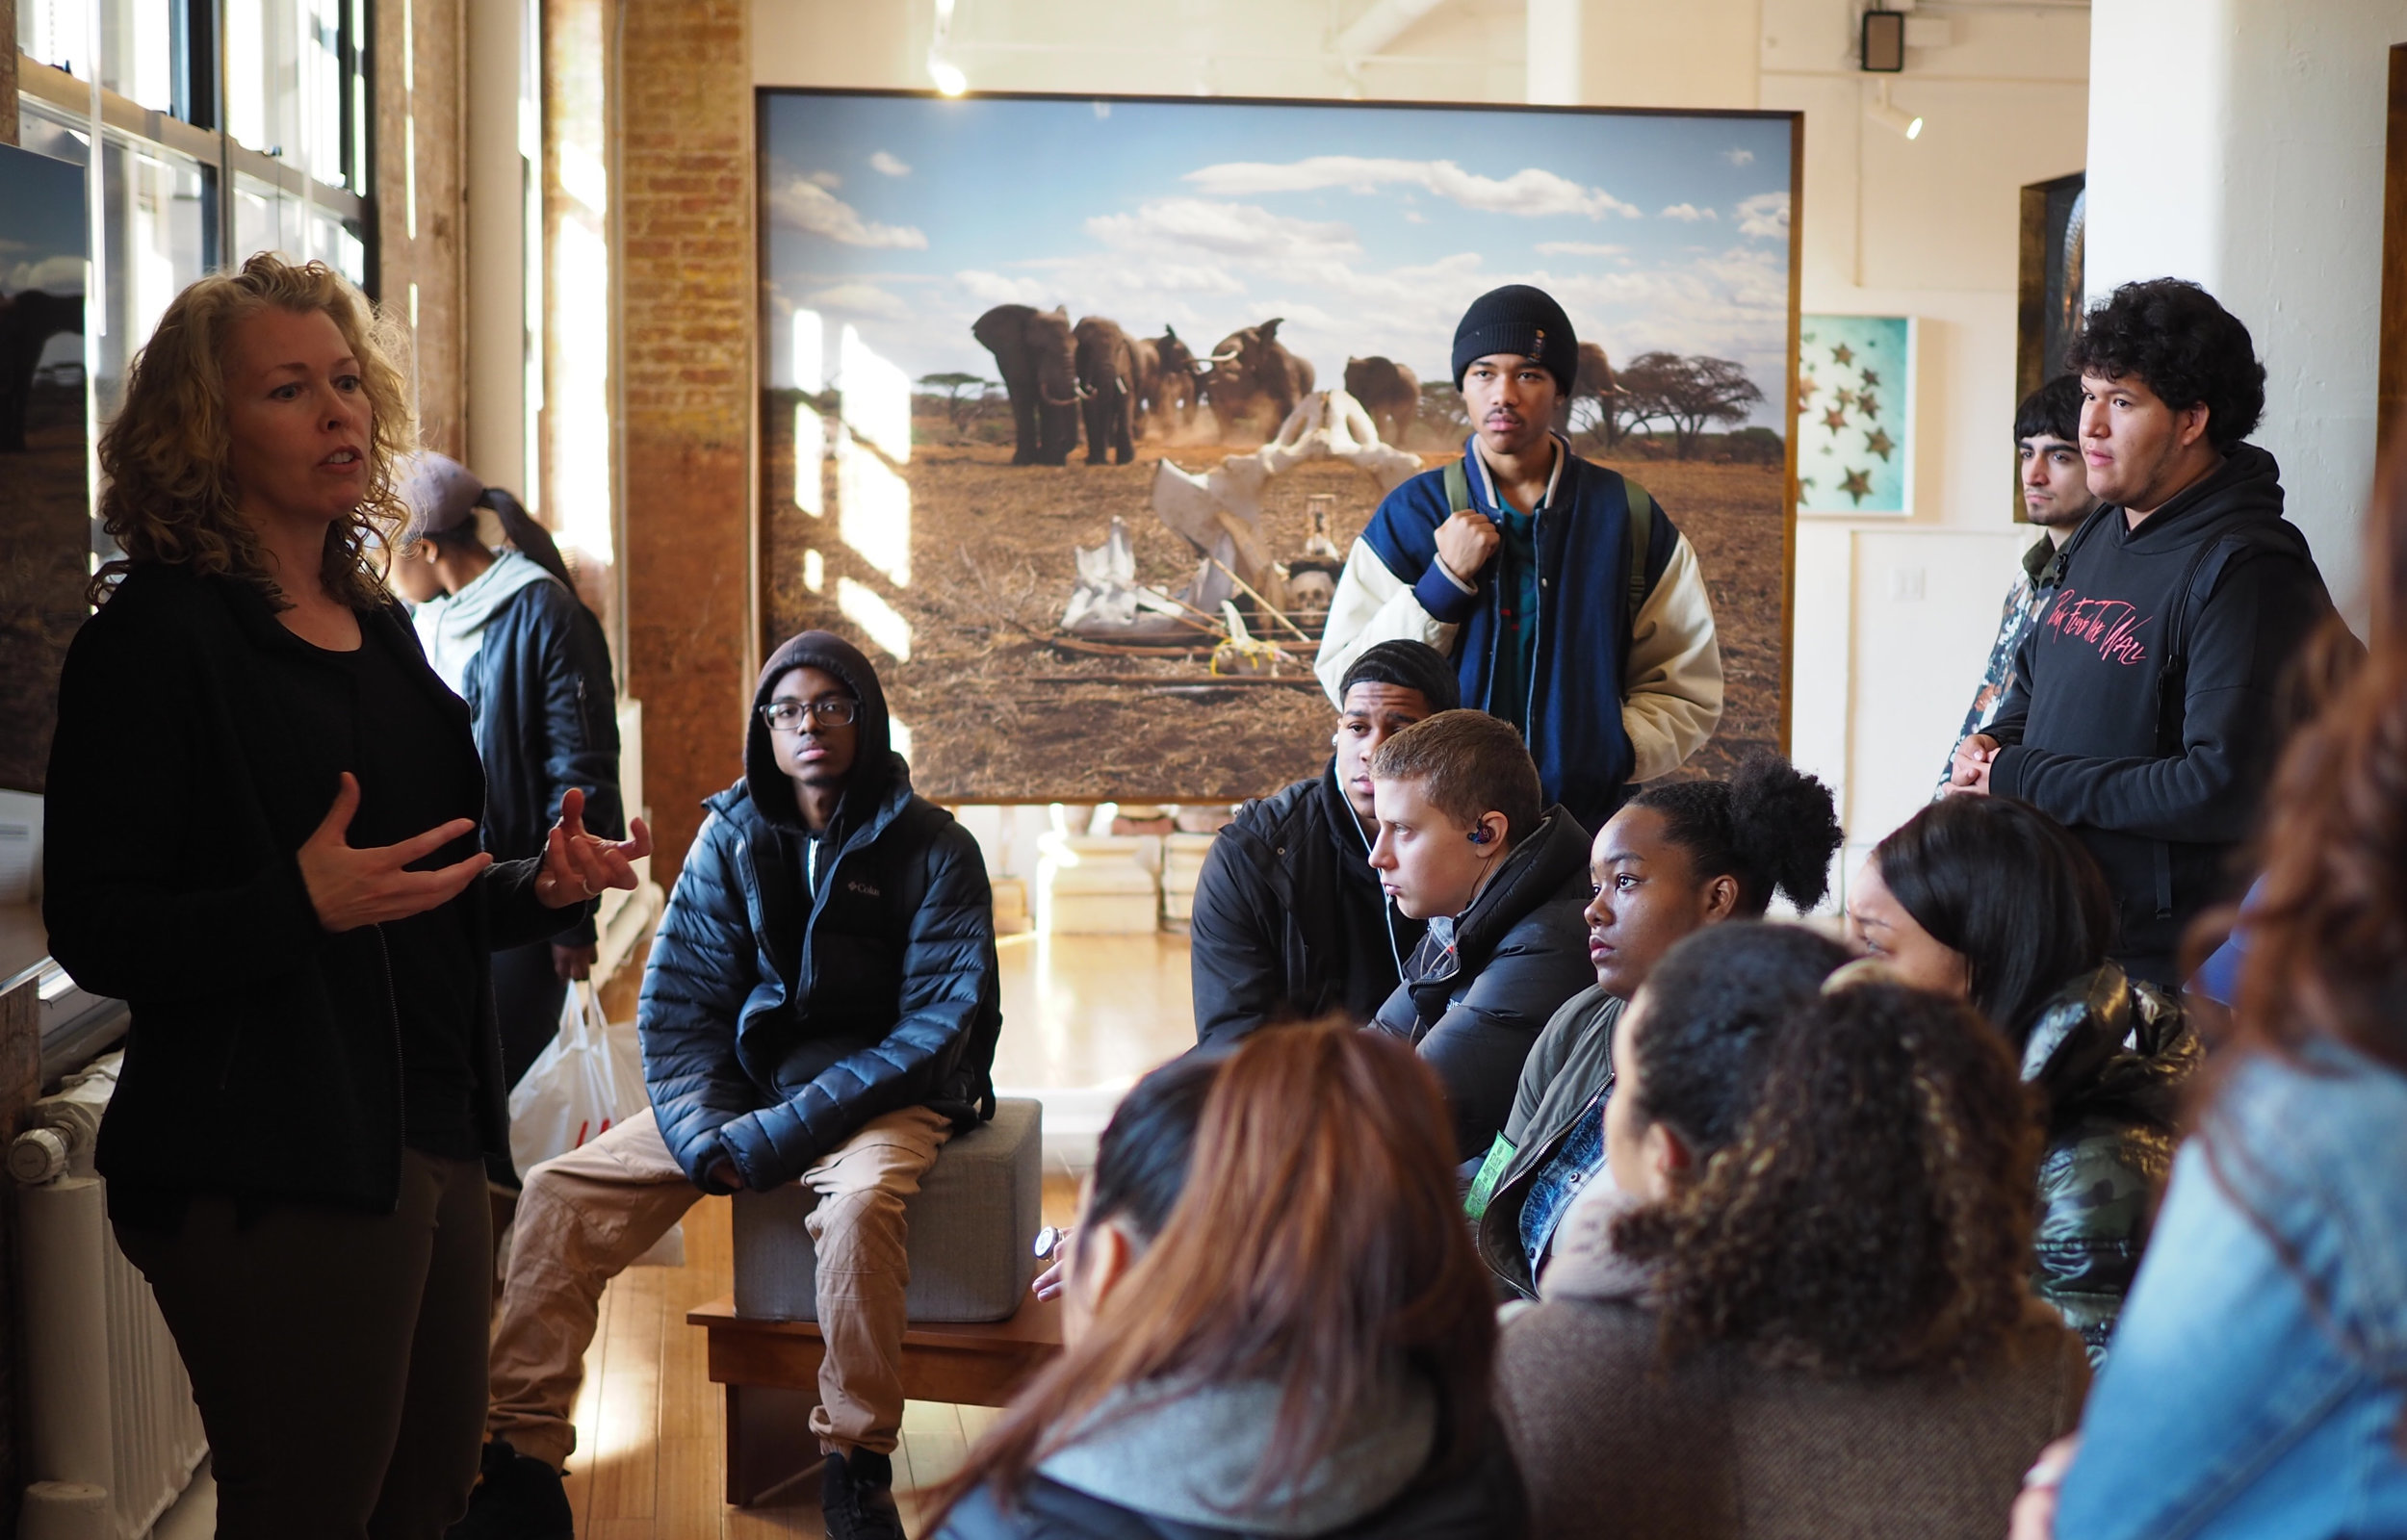 Climate Change Outreach to High School Students - Sustainability and resilience discussions at One Planet One Future's climate change gallery with Anne de Carbuccia.